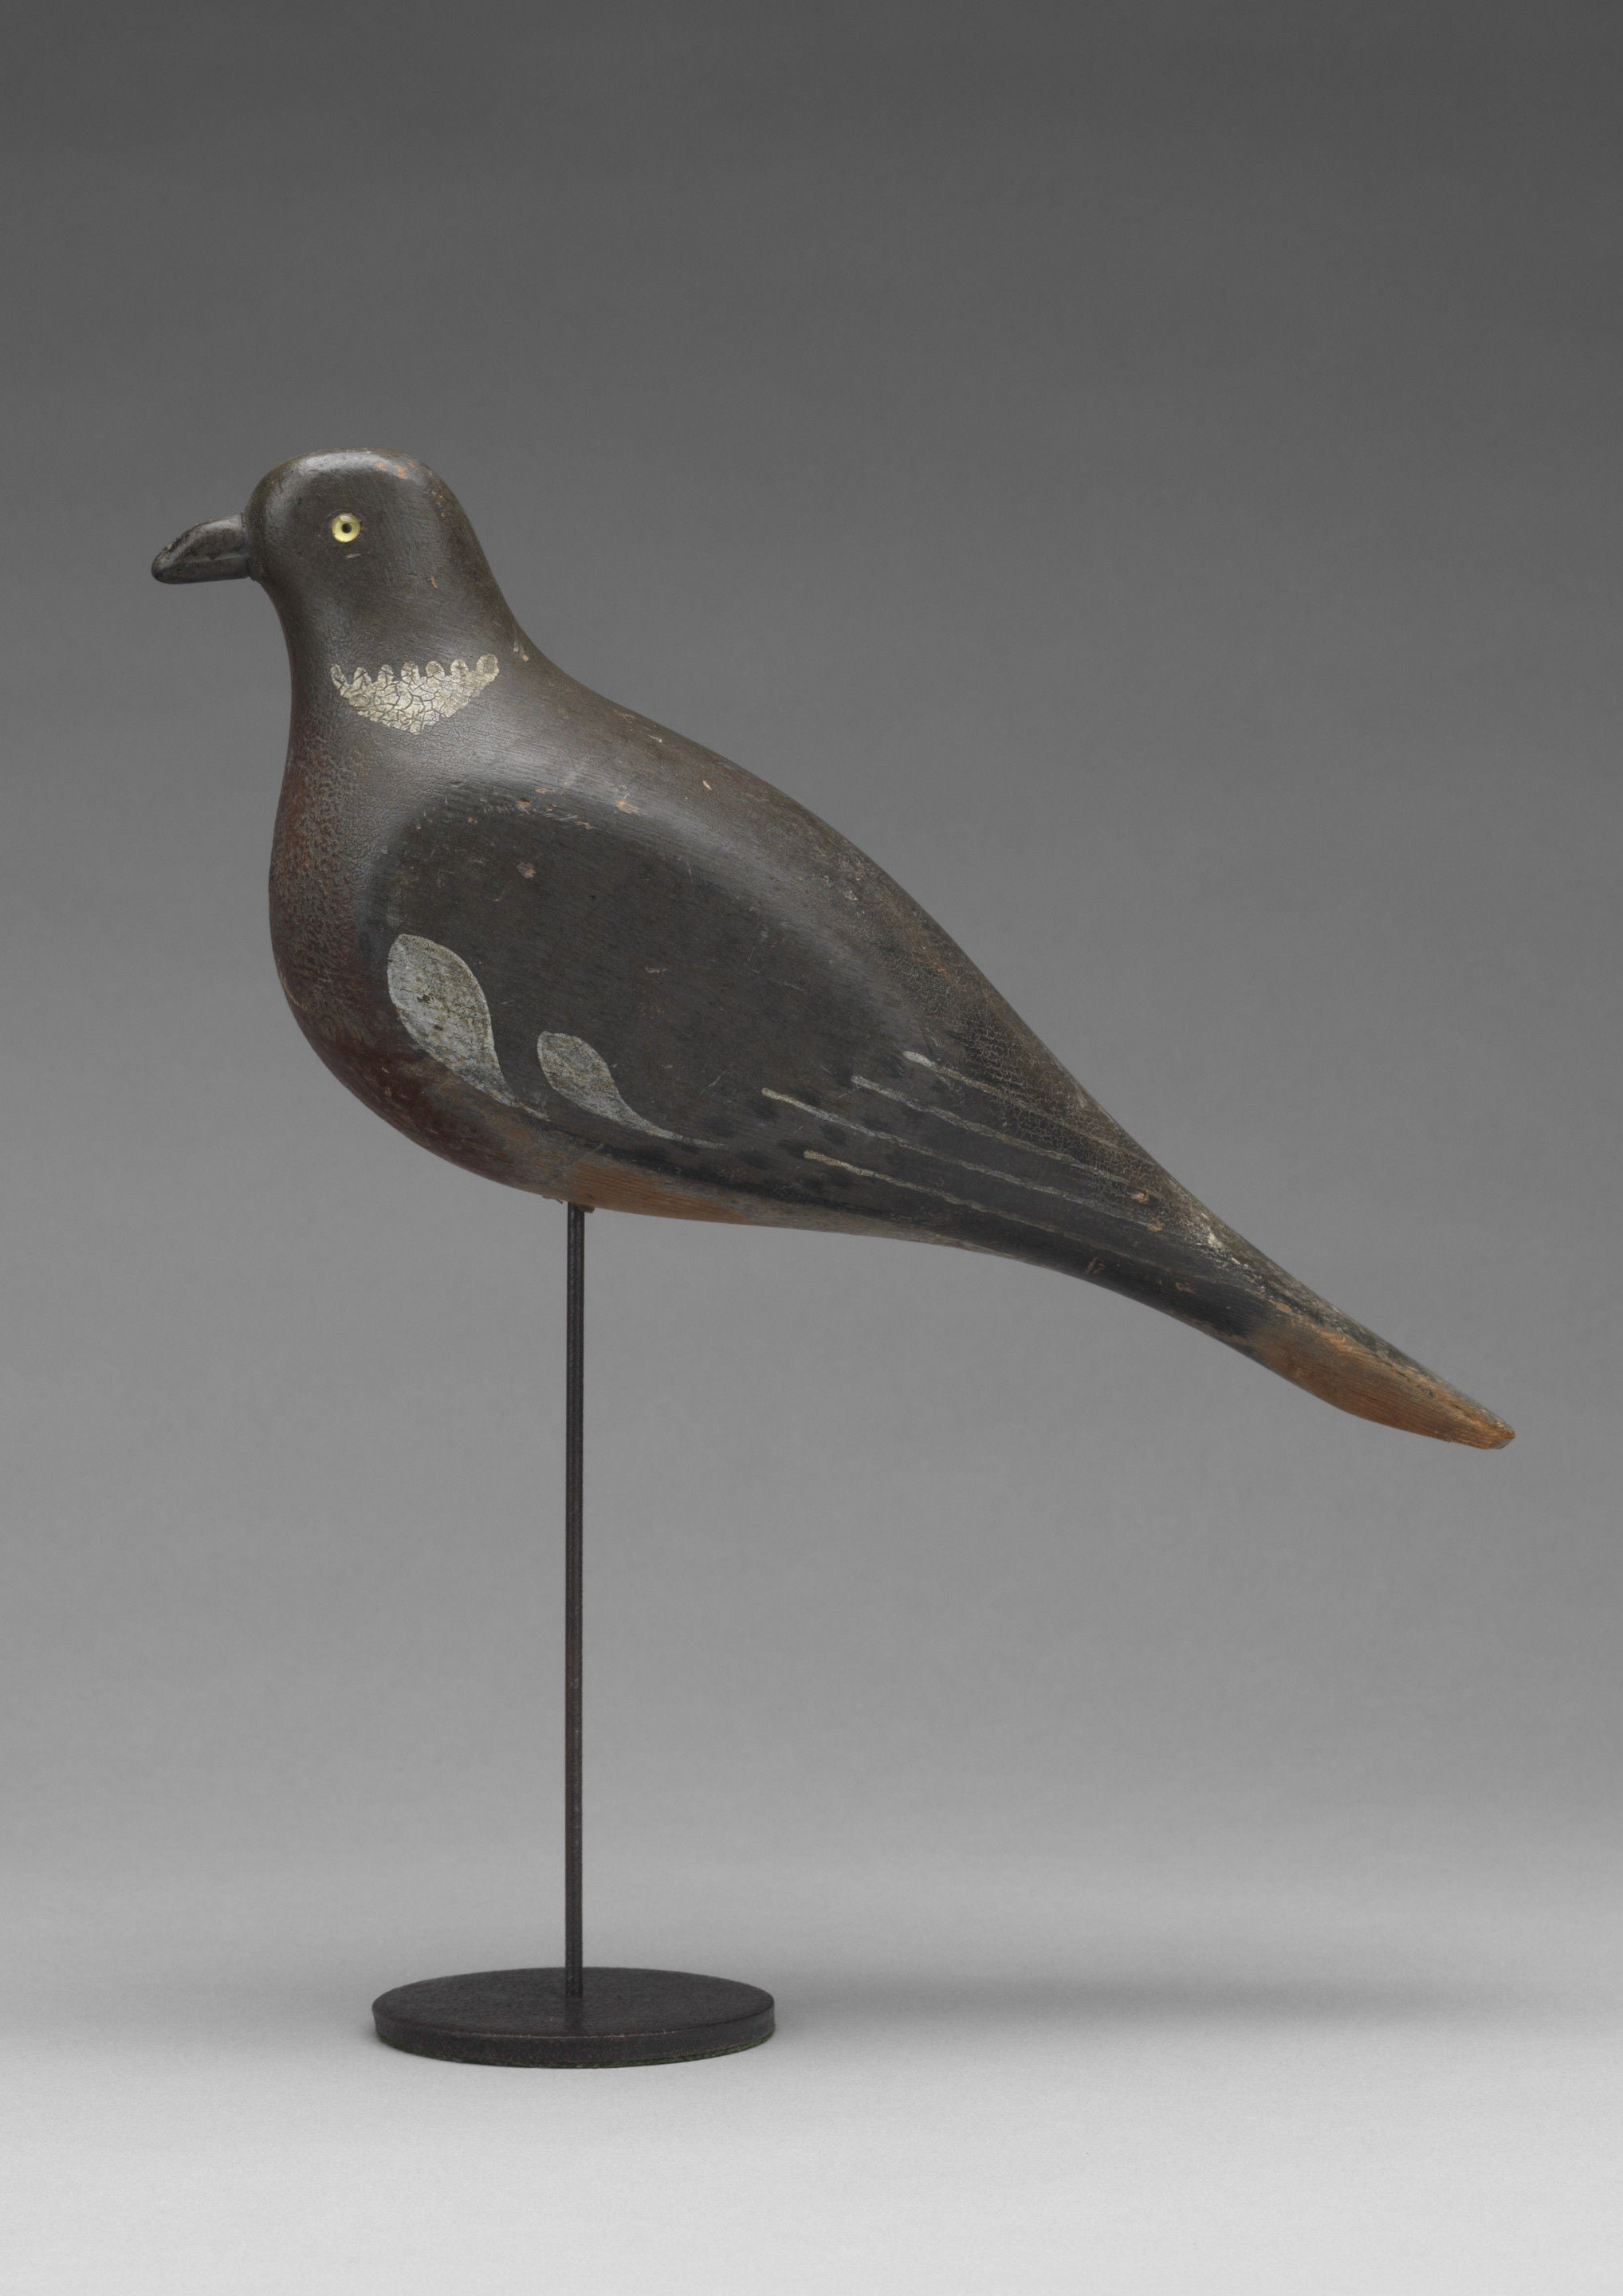 Stylized Wood Pigeon Decoy